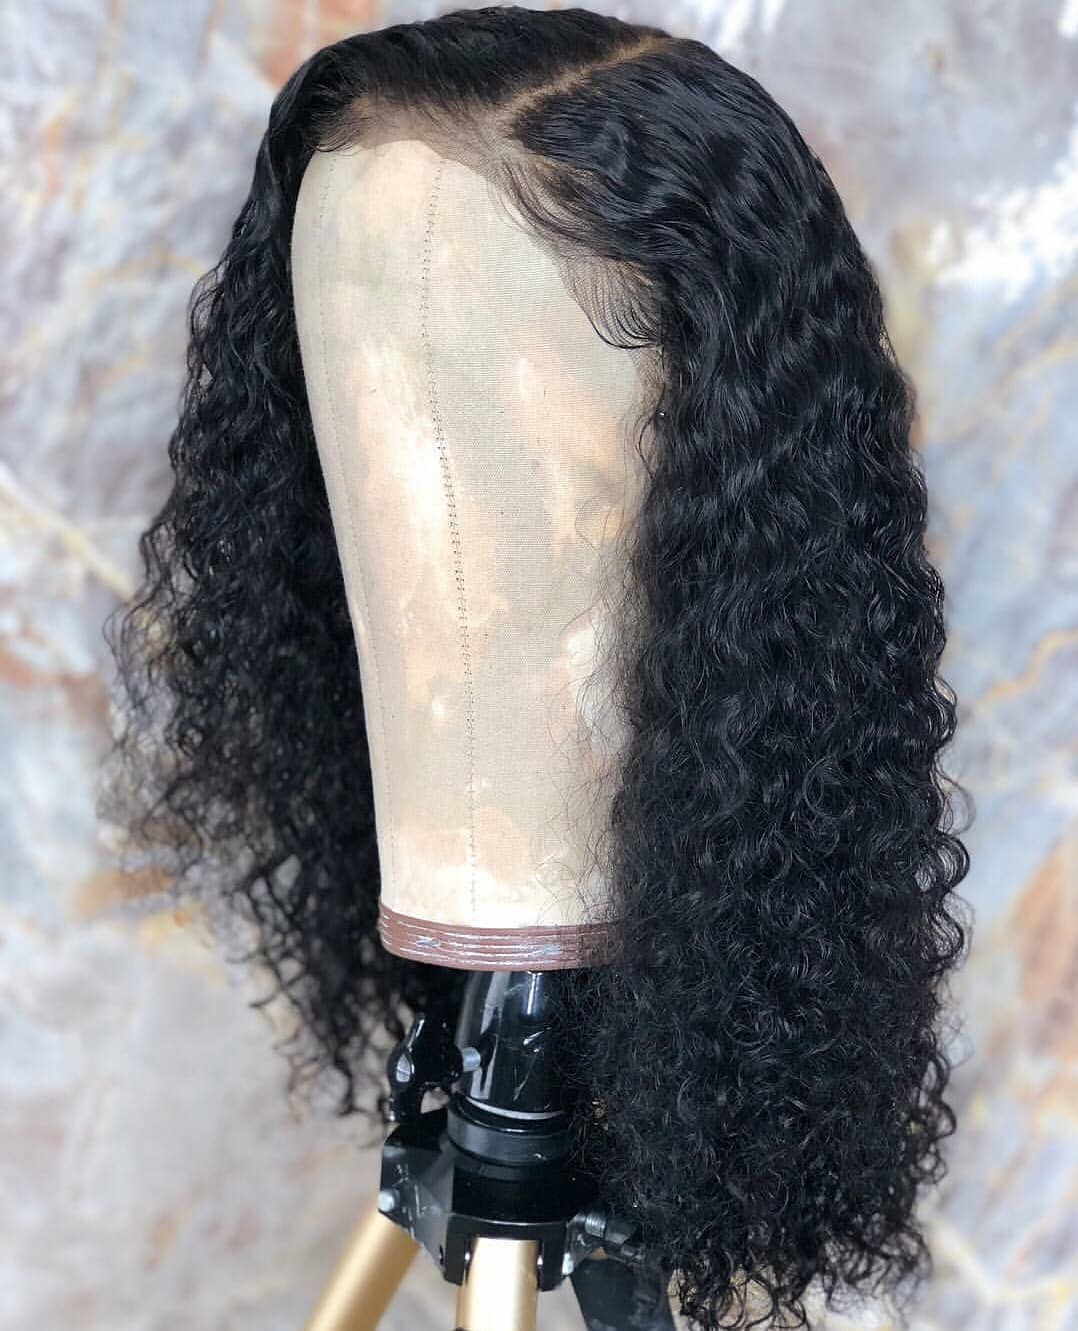 Curly Wigs Lace Front Curly Hair Black Hair Short Black Wig Afro Puff Wig Pieces Blonde Cosplay Wig Frontal Sew In Bob